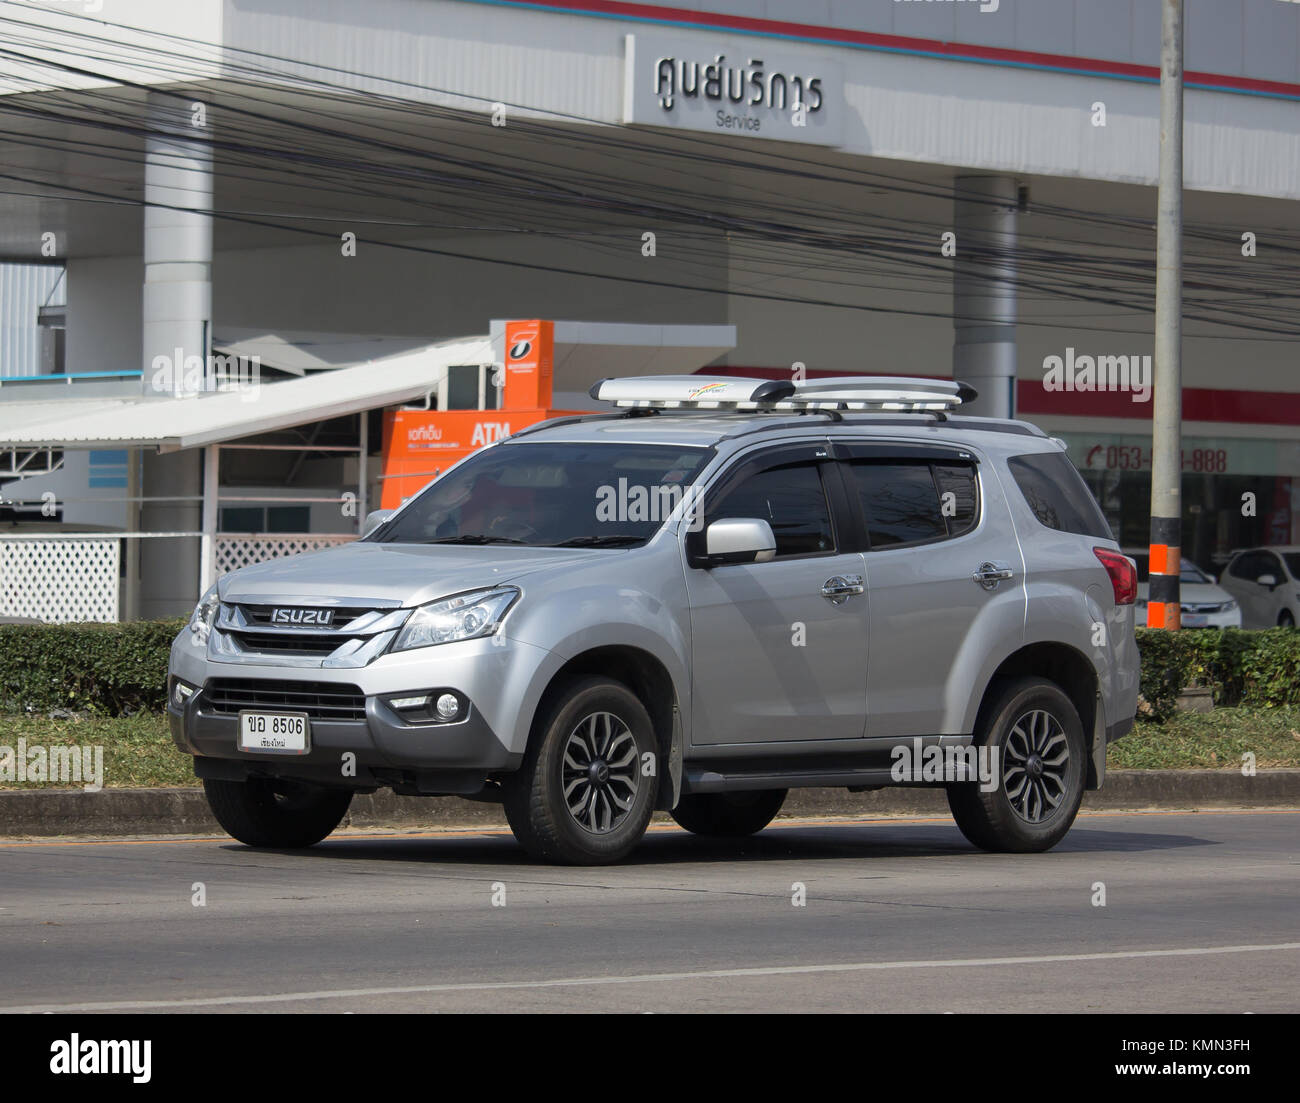 Chiang mai thailand november 28 2017 private suv car isuzu mu x chiang mai thailand november 28 2017 private suv car isuzu mu x mu x on road no1001 8 km from chiangmai business area sciox Image collections